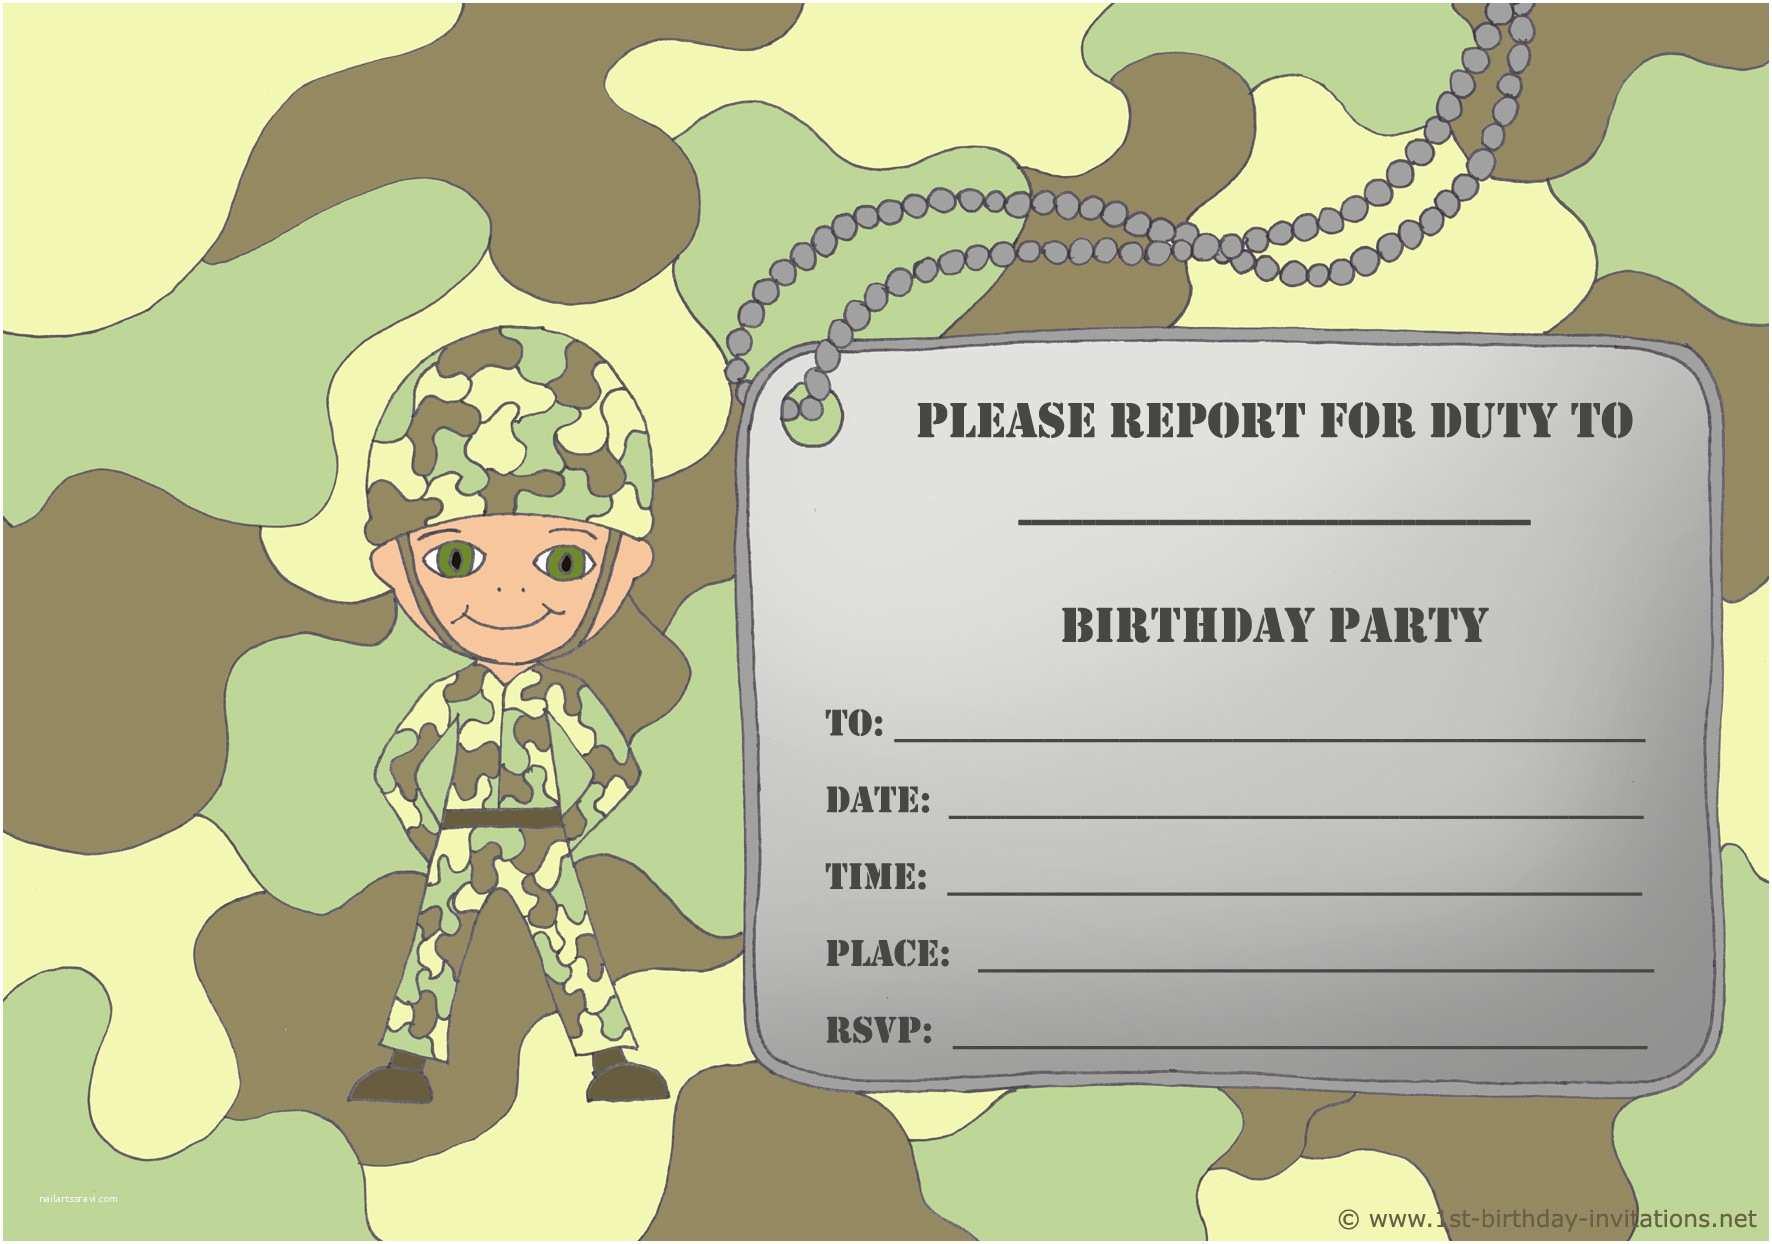 Birthday Party Invitations 14 Printable Birthday Invitations Many Fun themes